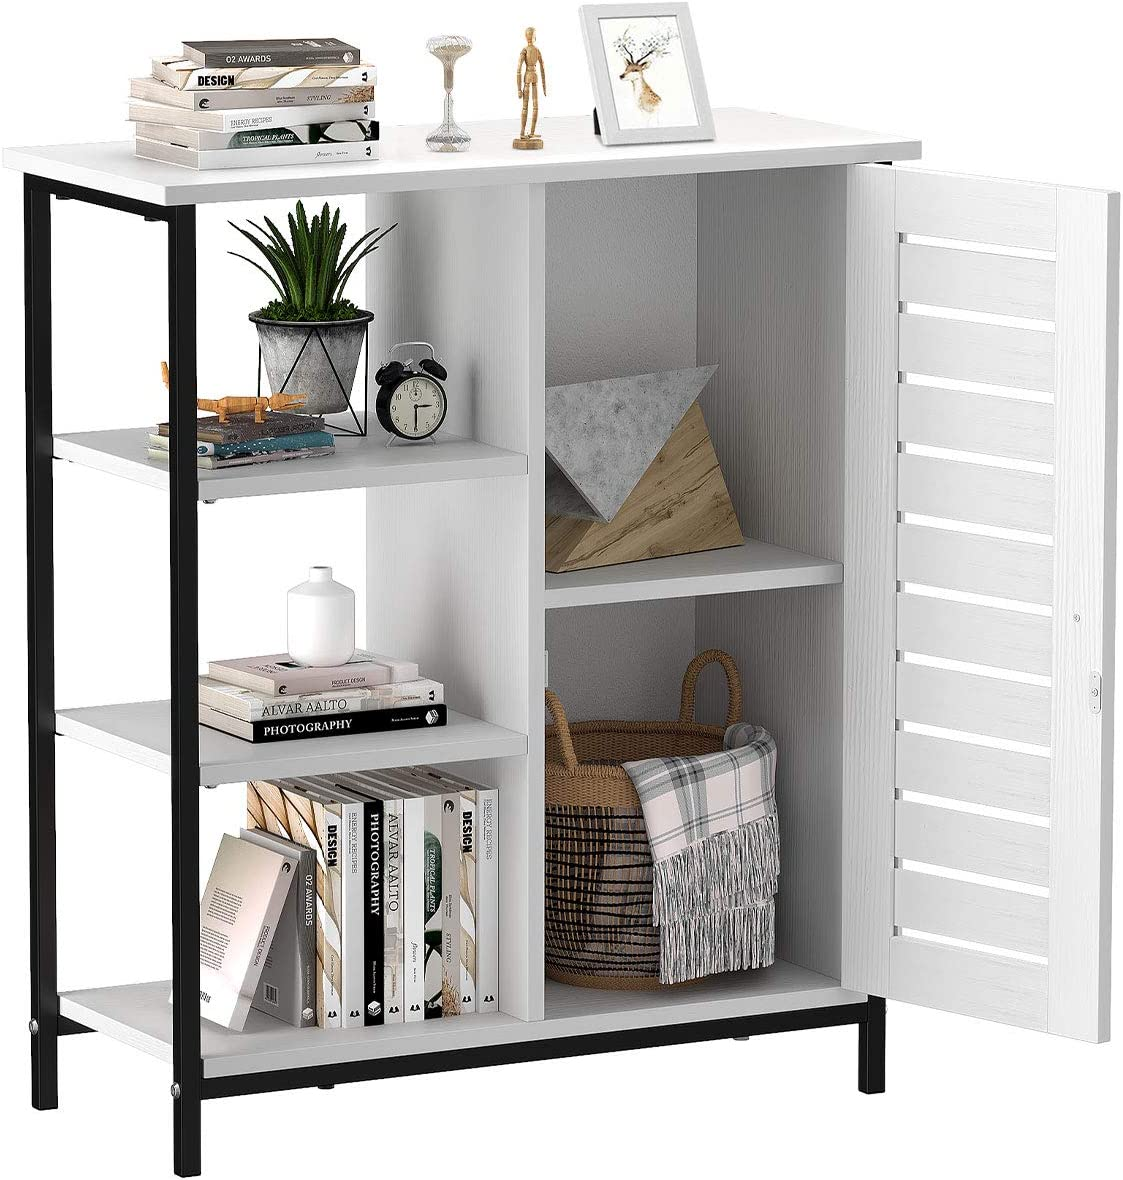 New Detroit Mall product YITAHOME Side Storage Cabinet Cupboard Cabine Floor Sideboard